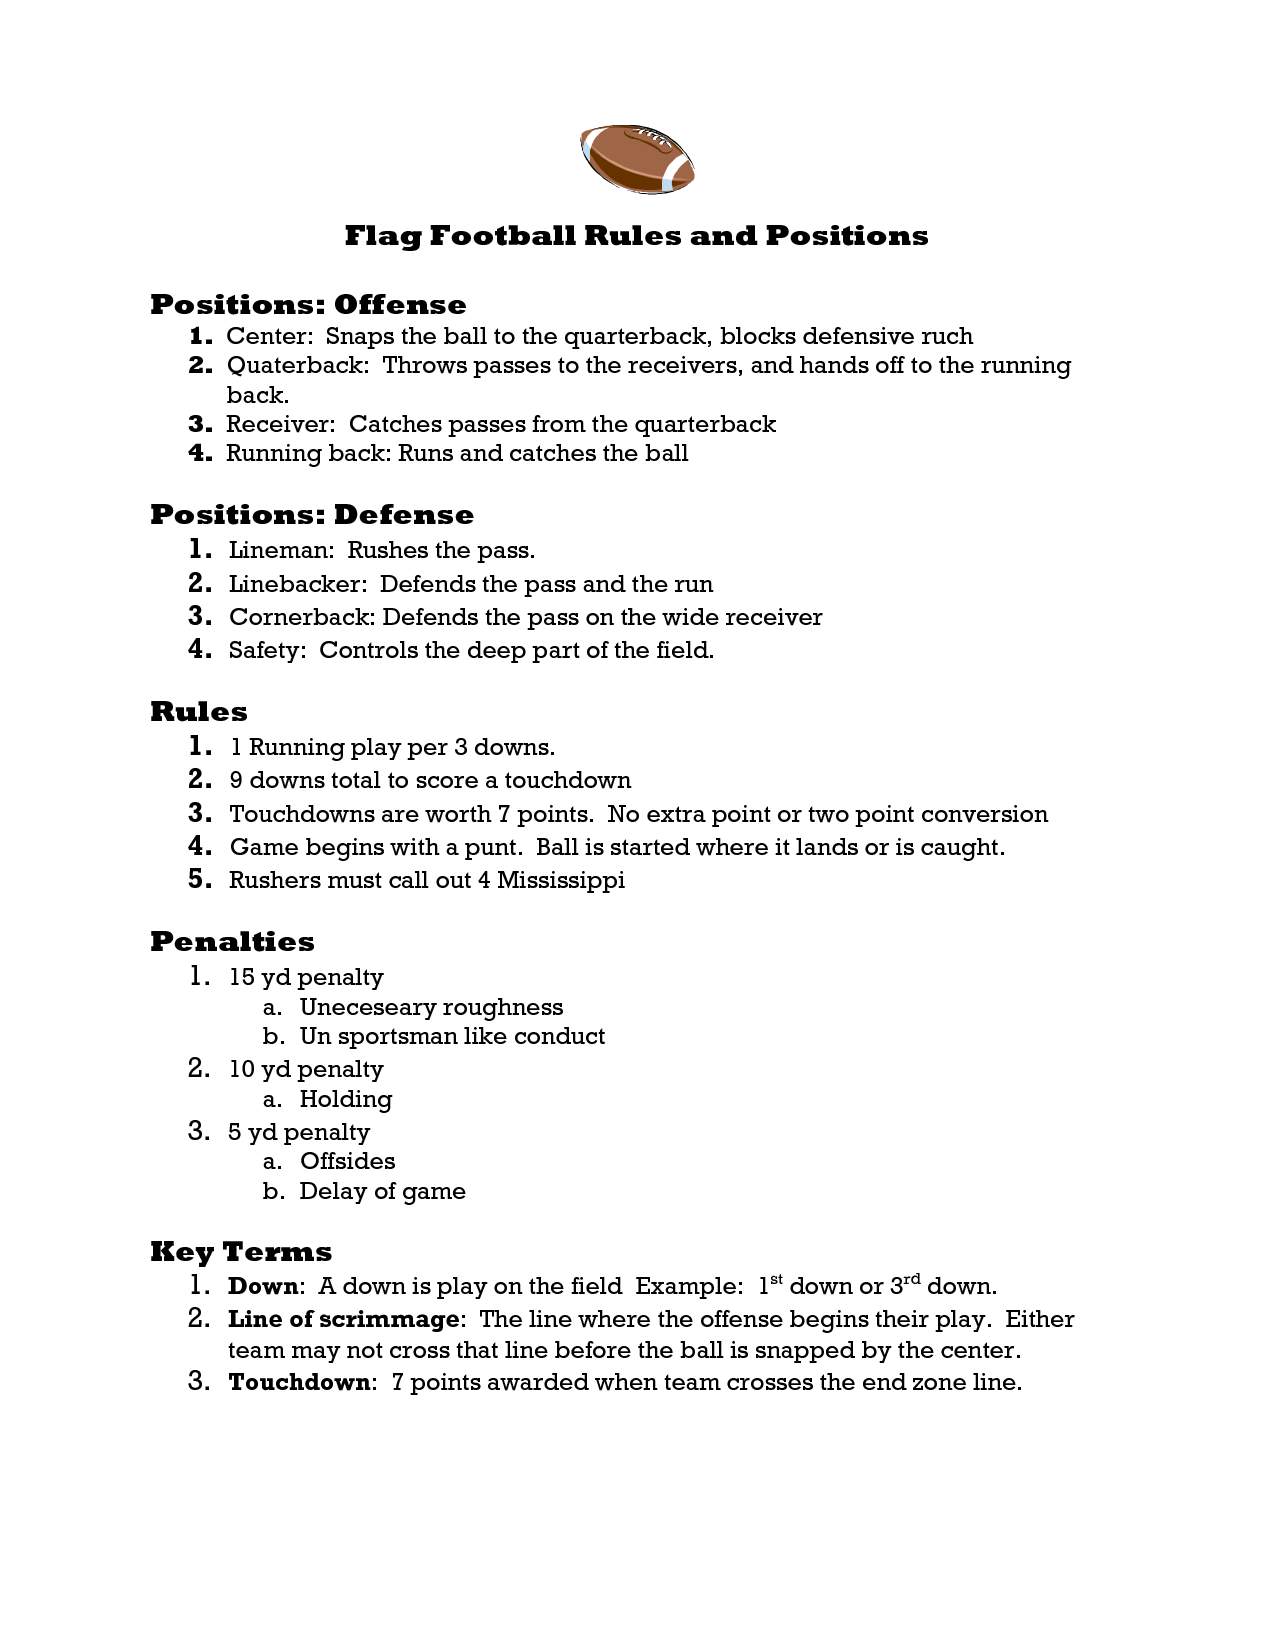 image result for flag football rules [ 1275 x 1650 Pixel ]